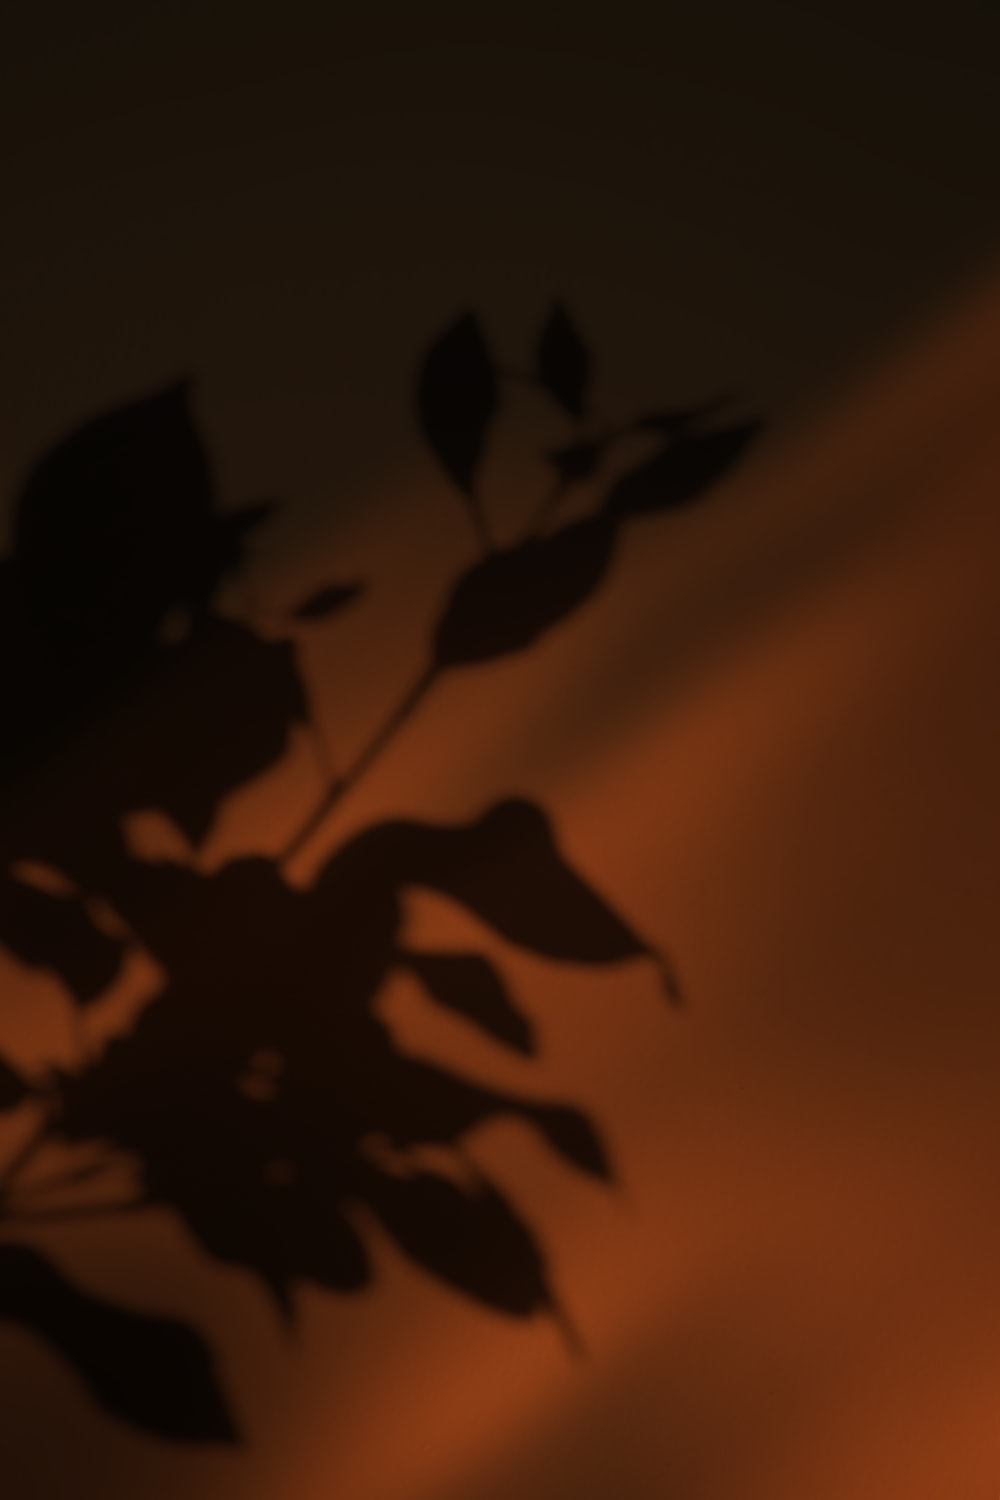 silhouette of flower during sunset